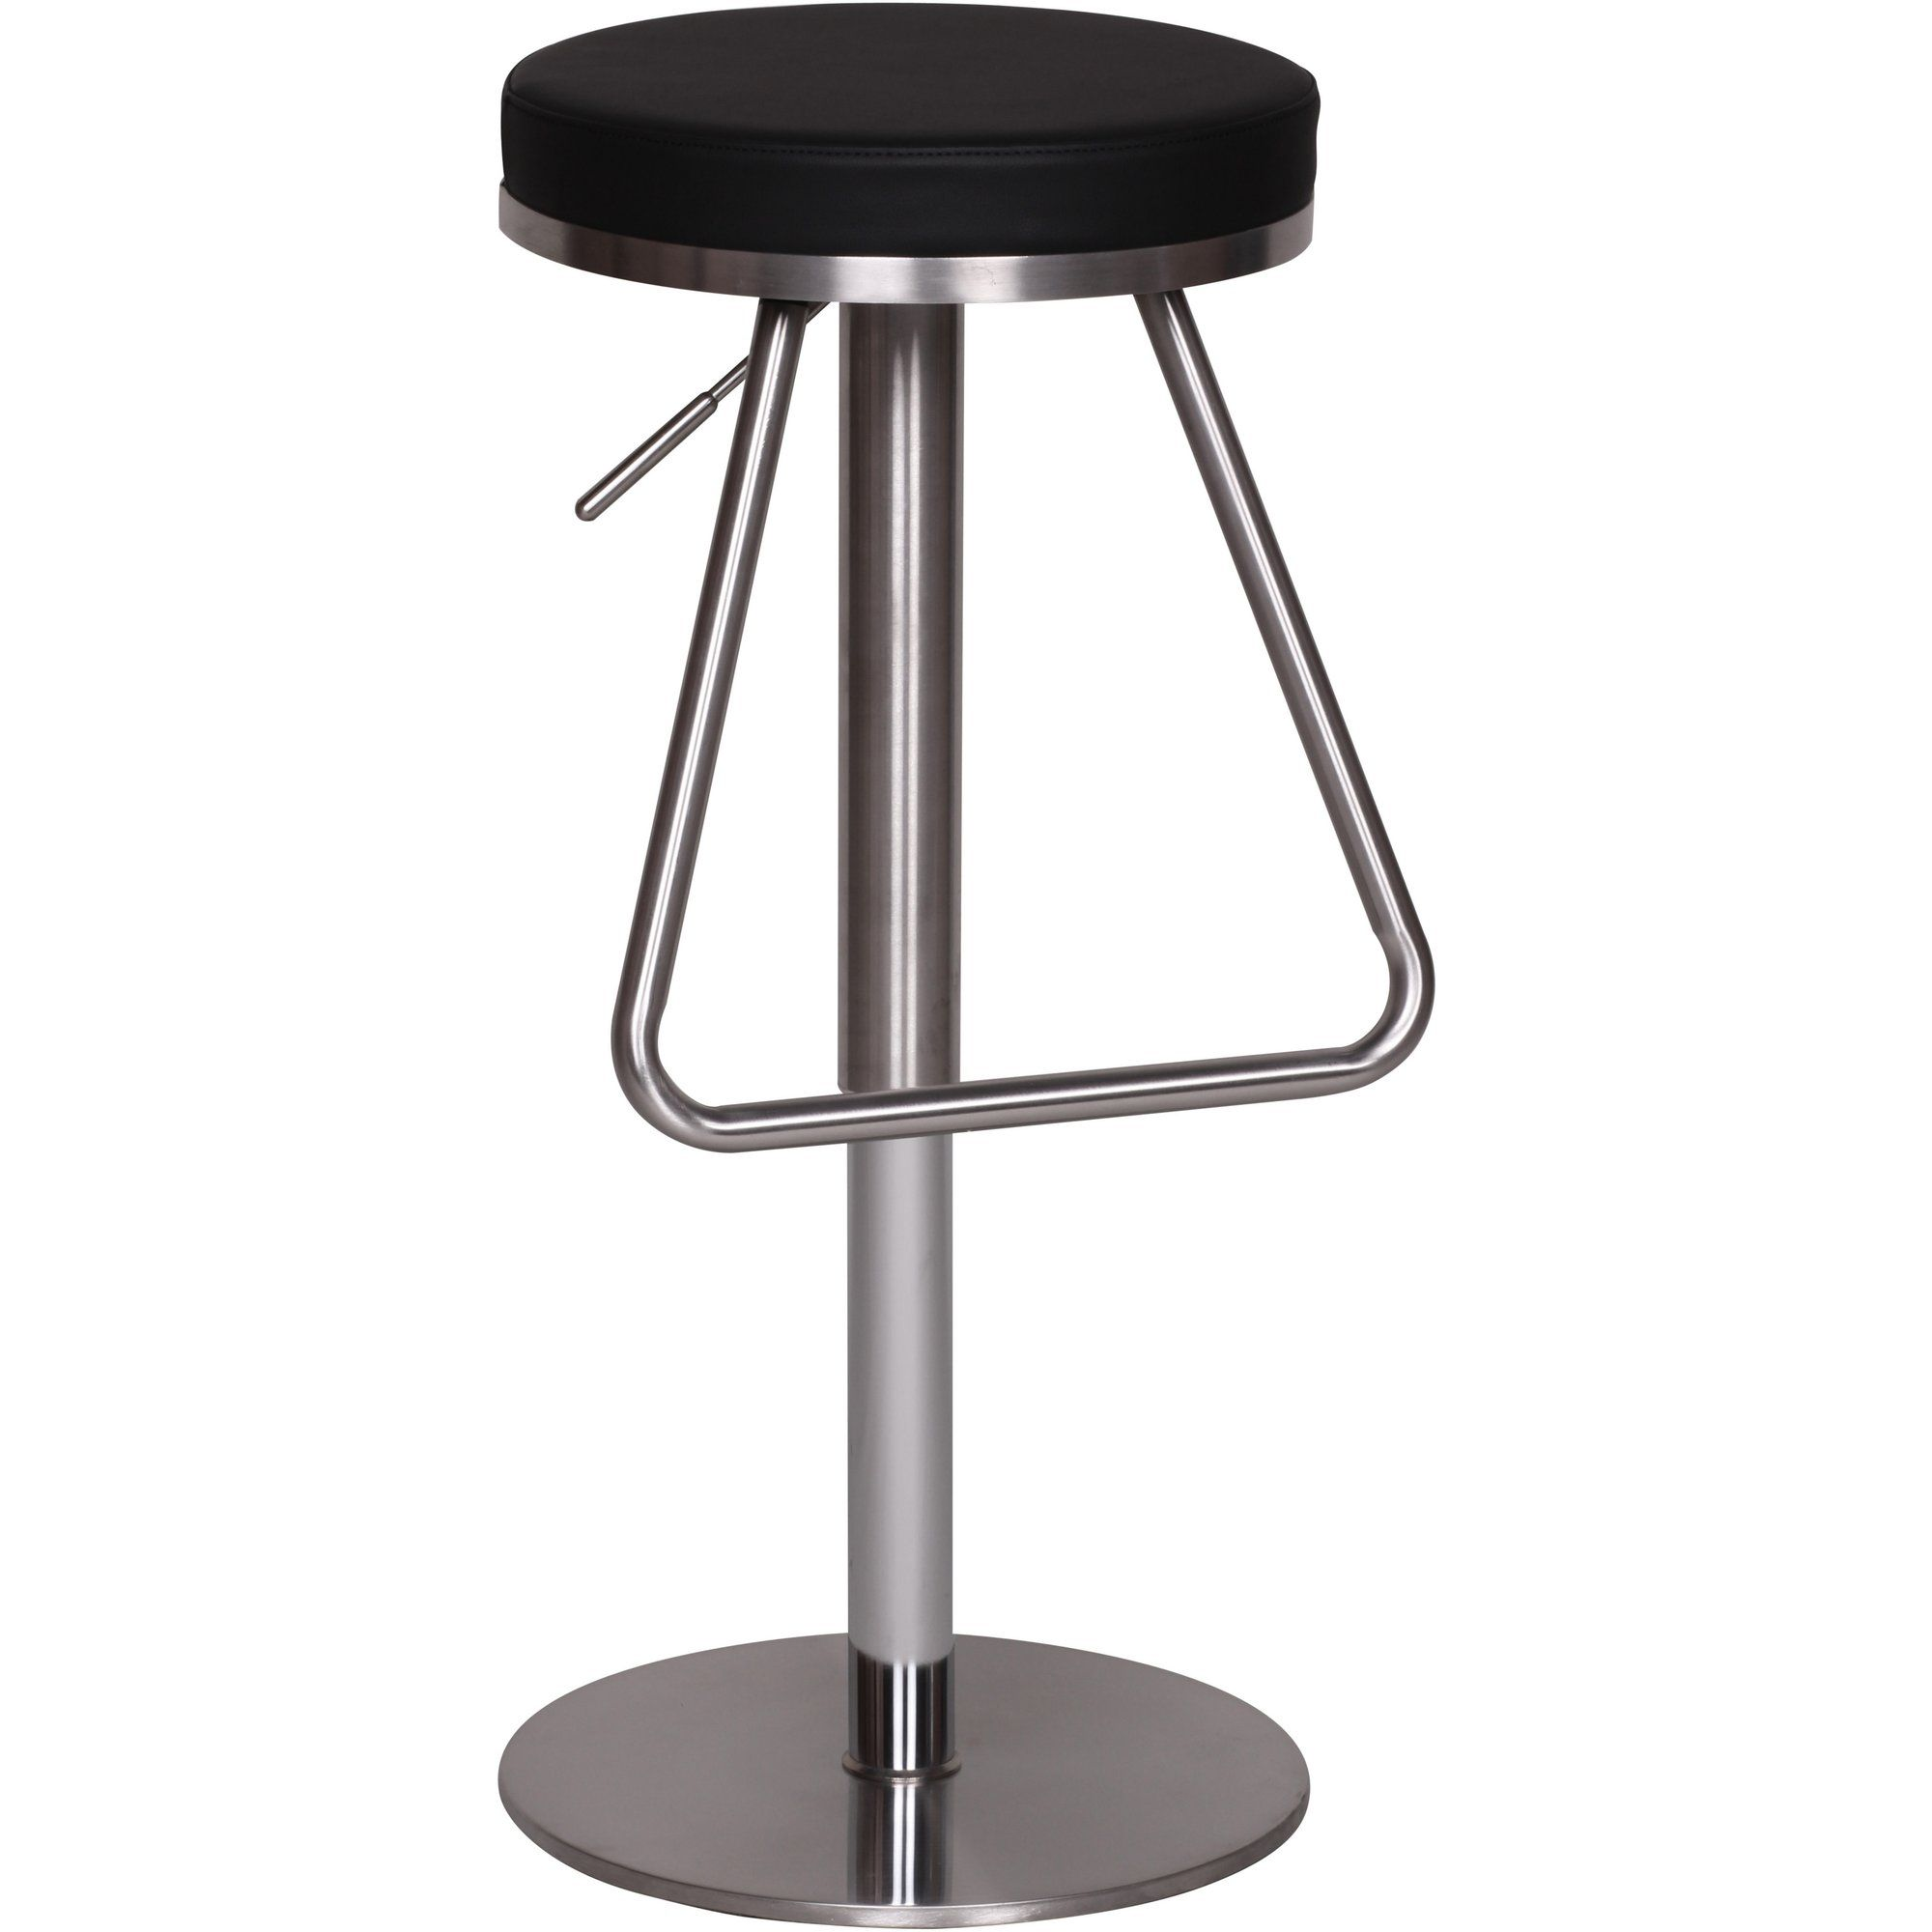 tabouret de bar design assise ronde hauteur r glable wohnling ce tabouret r glable en hauteur. Black Bedroom Furniture Sets. Home Design Ideas